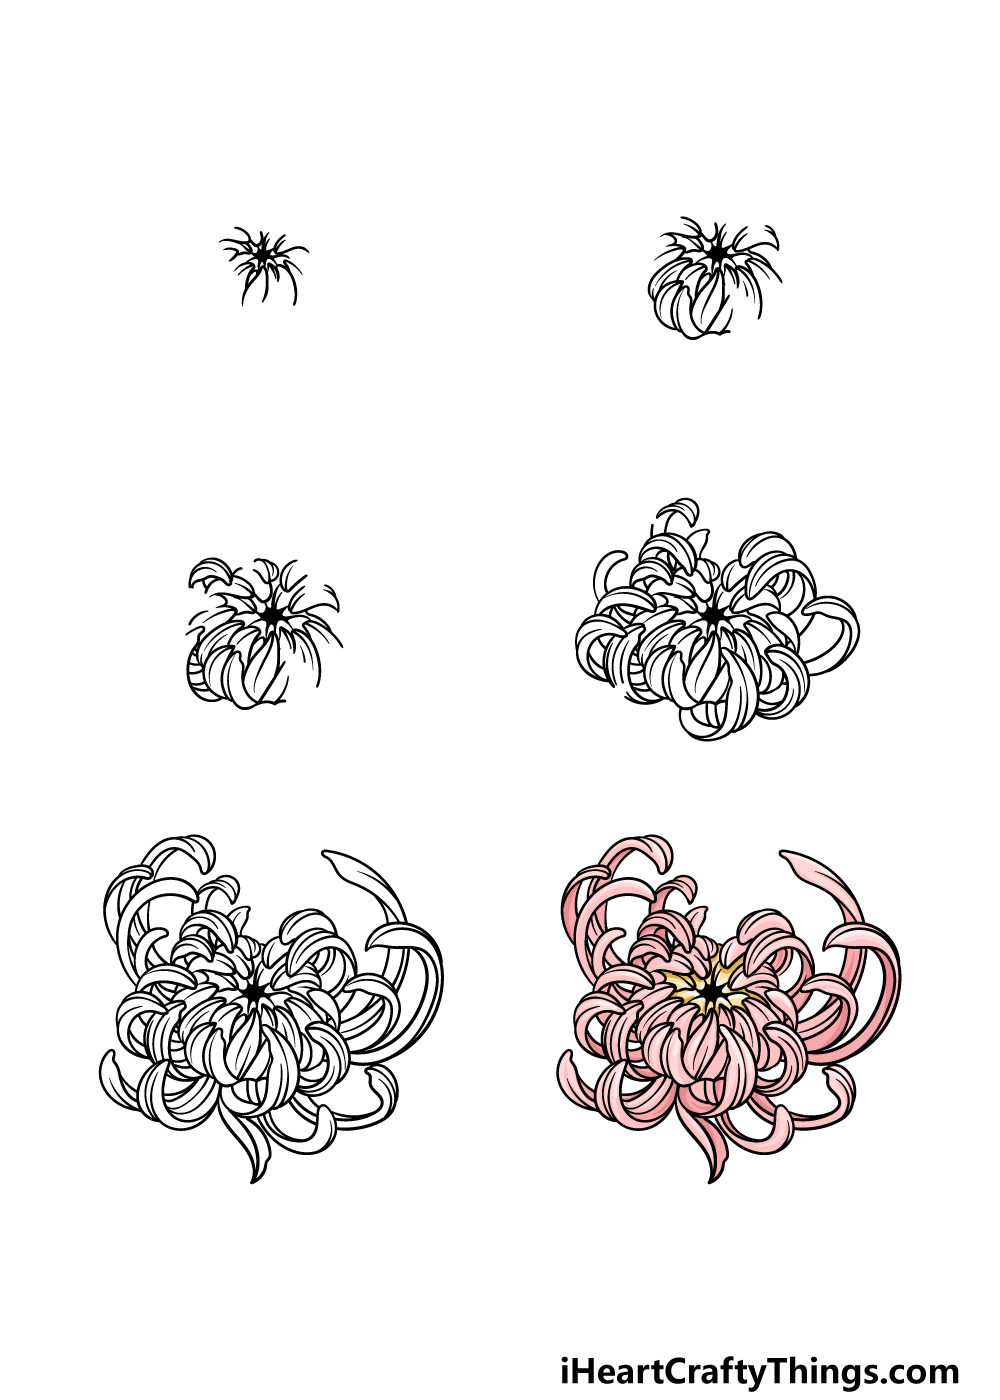 How To Draw A Chrysanthemum in 6 steps